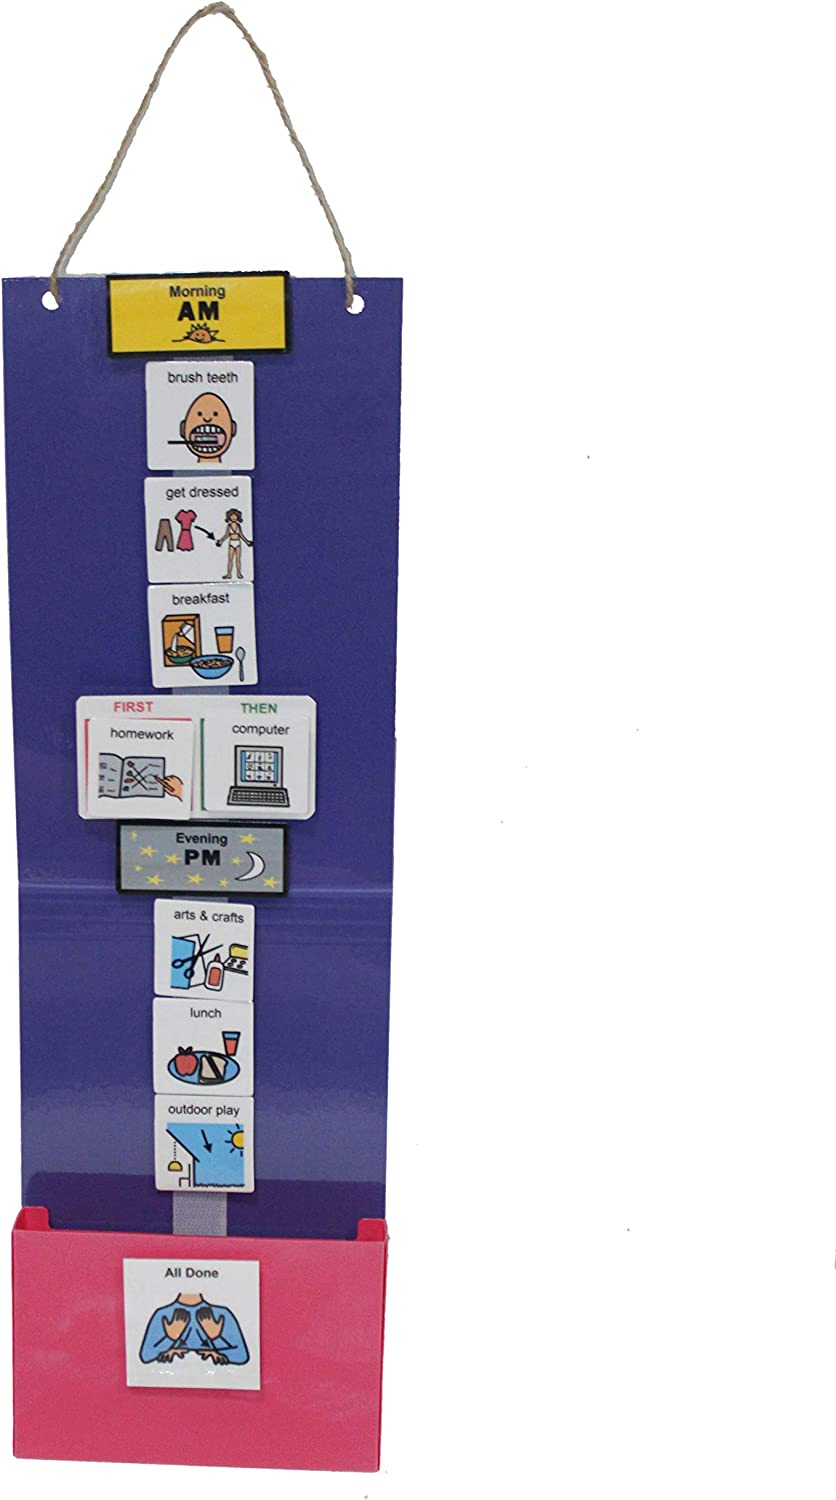 Kids Plastic or Laminated Visual Schedule Calendar Chart for Home, School, Centers, Photo Cards: Chores, Reinforcers, School, Behavior (One Strip Purple Schedule, Laminated/Cartoon 30 Home Cards)